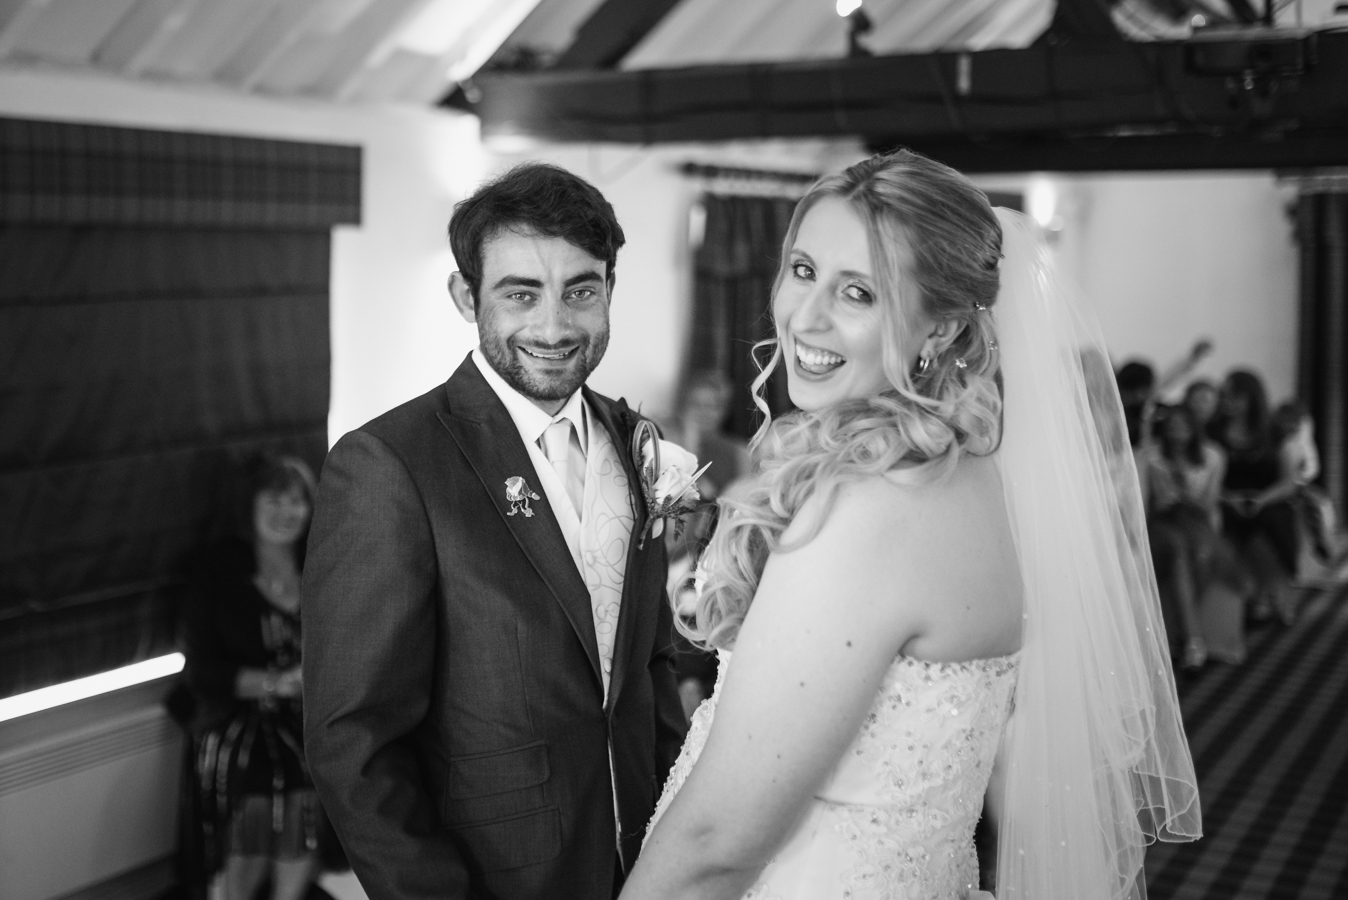 documentary wedding photography by MK Wedding photography, west midlands, coventry